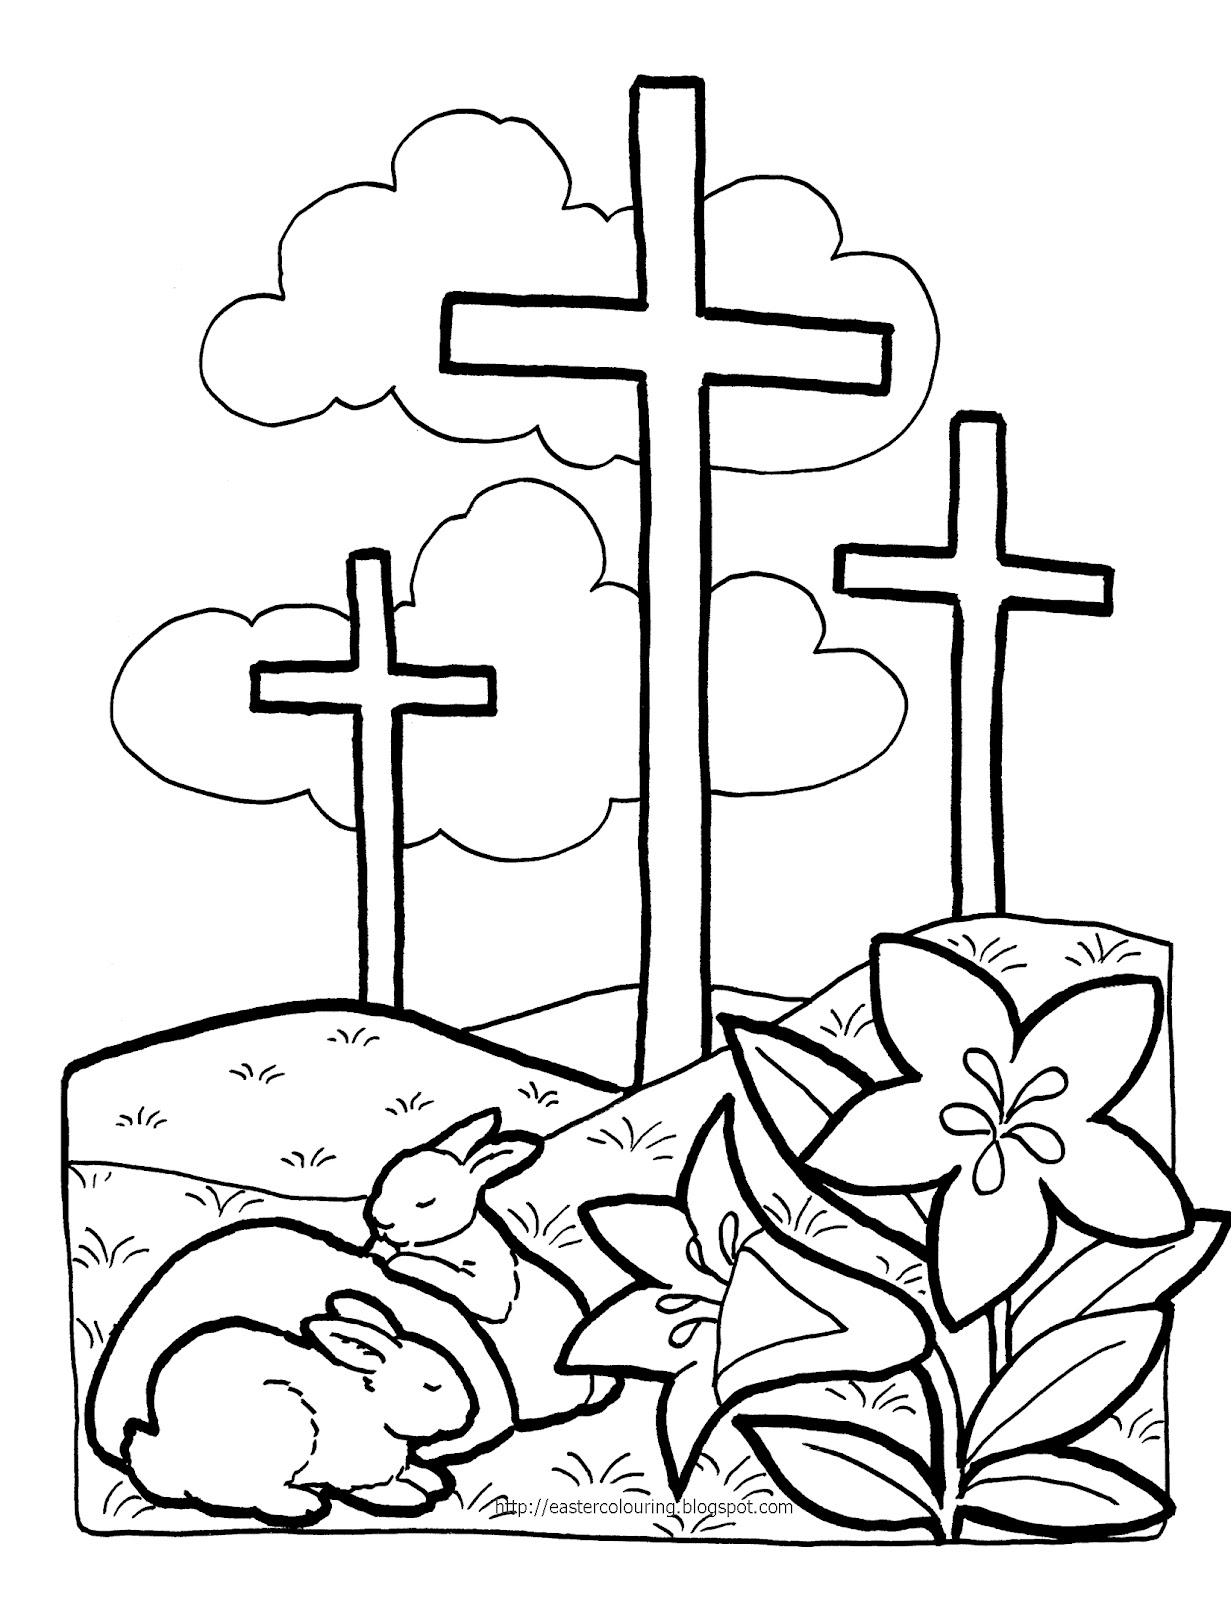 children christian coloring pages - photo#27